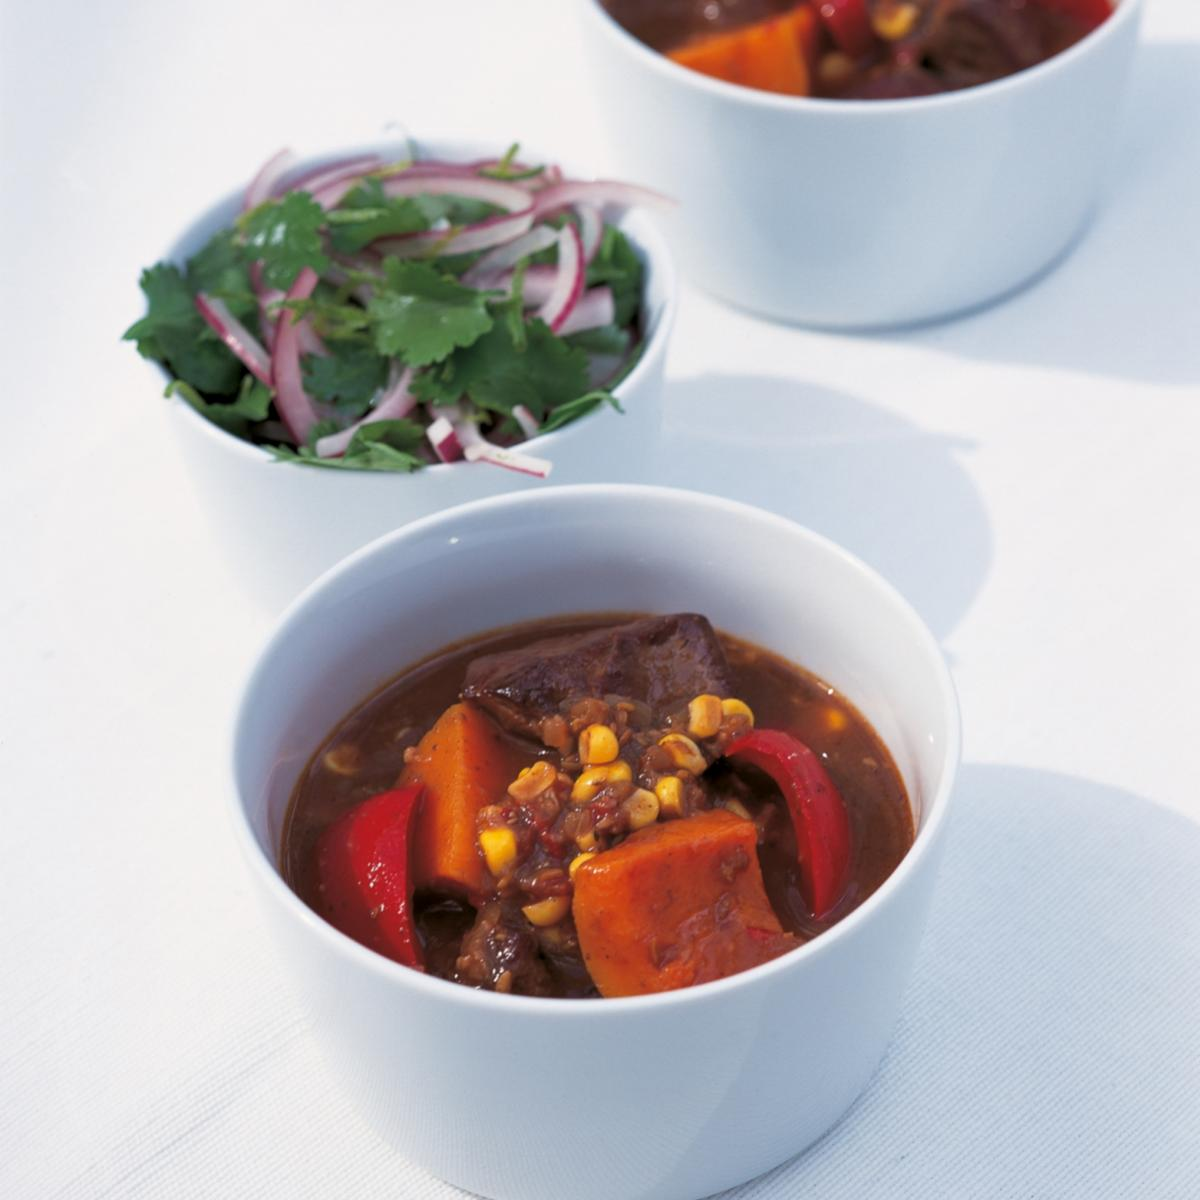 Htc latin american beef stew with marinated red onion salad